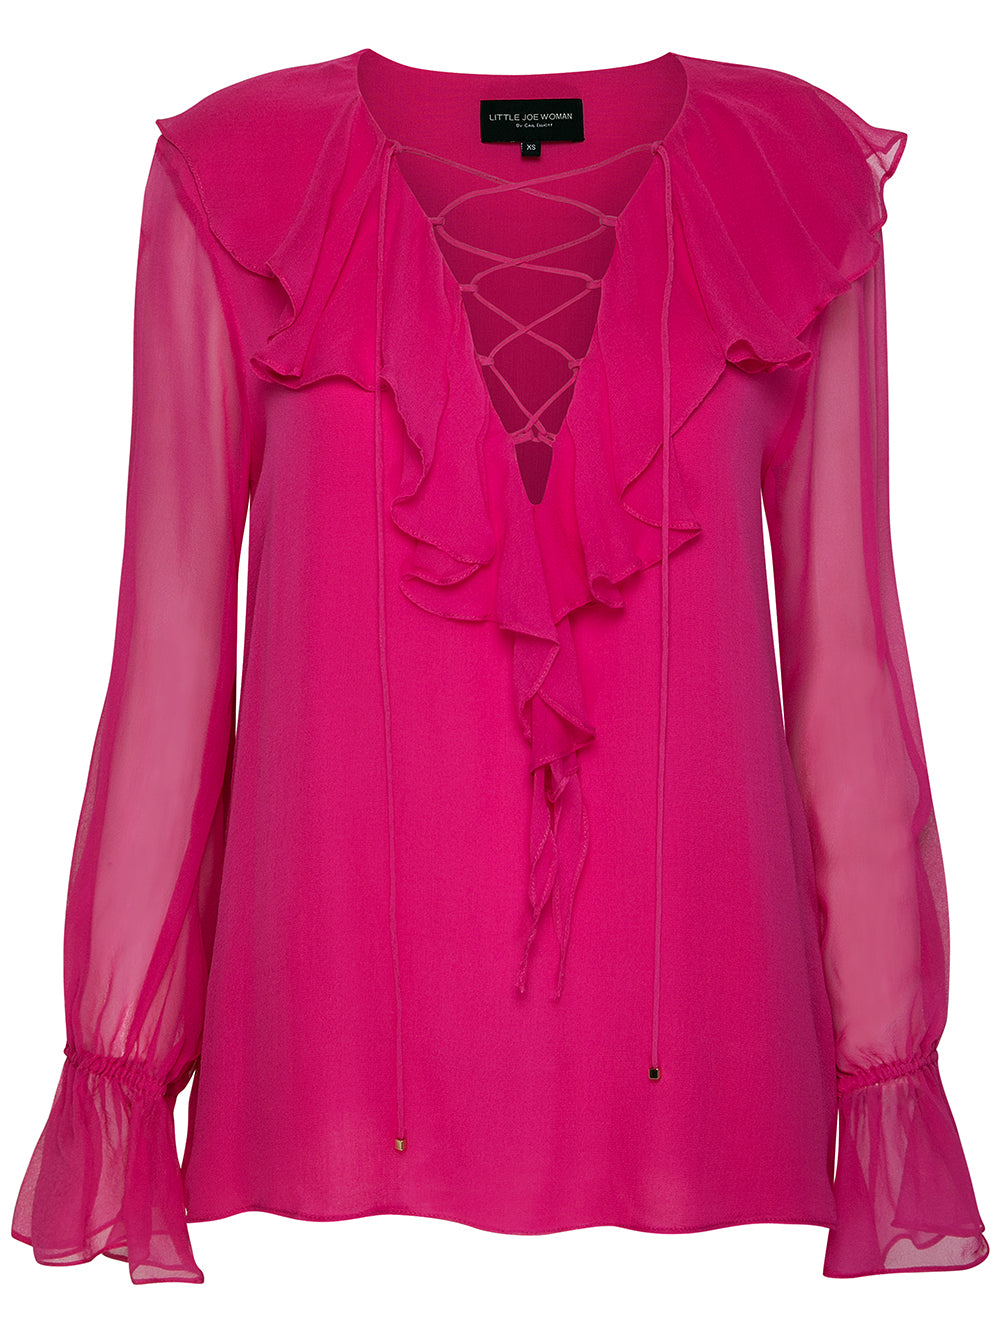 IN MY ARMS SILK BLOUSE